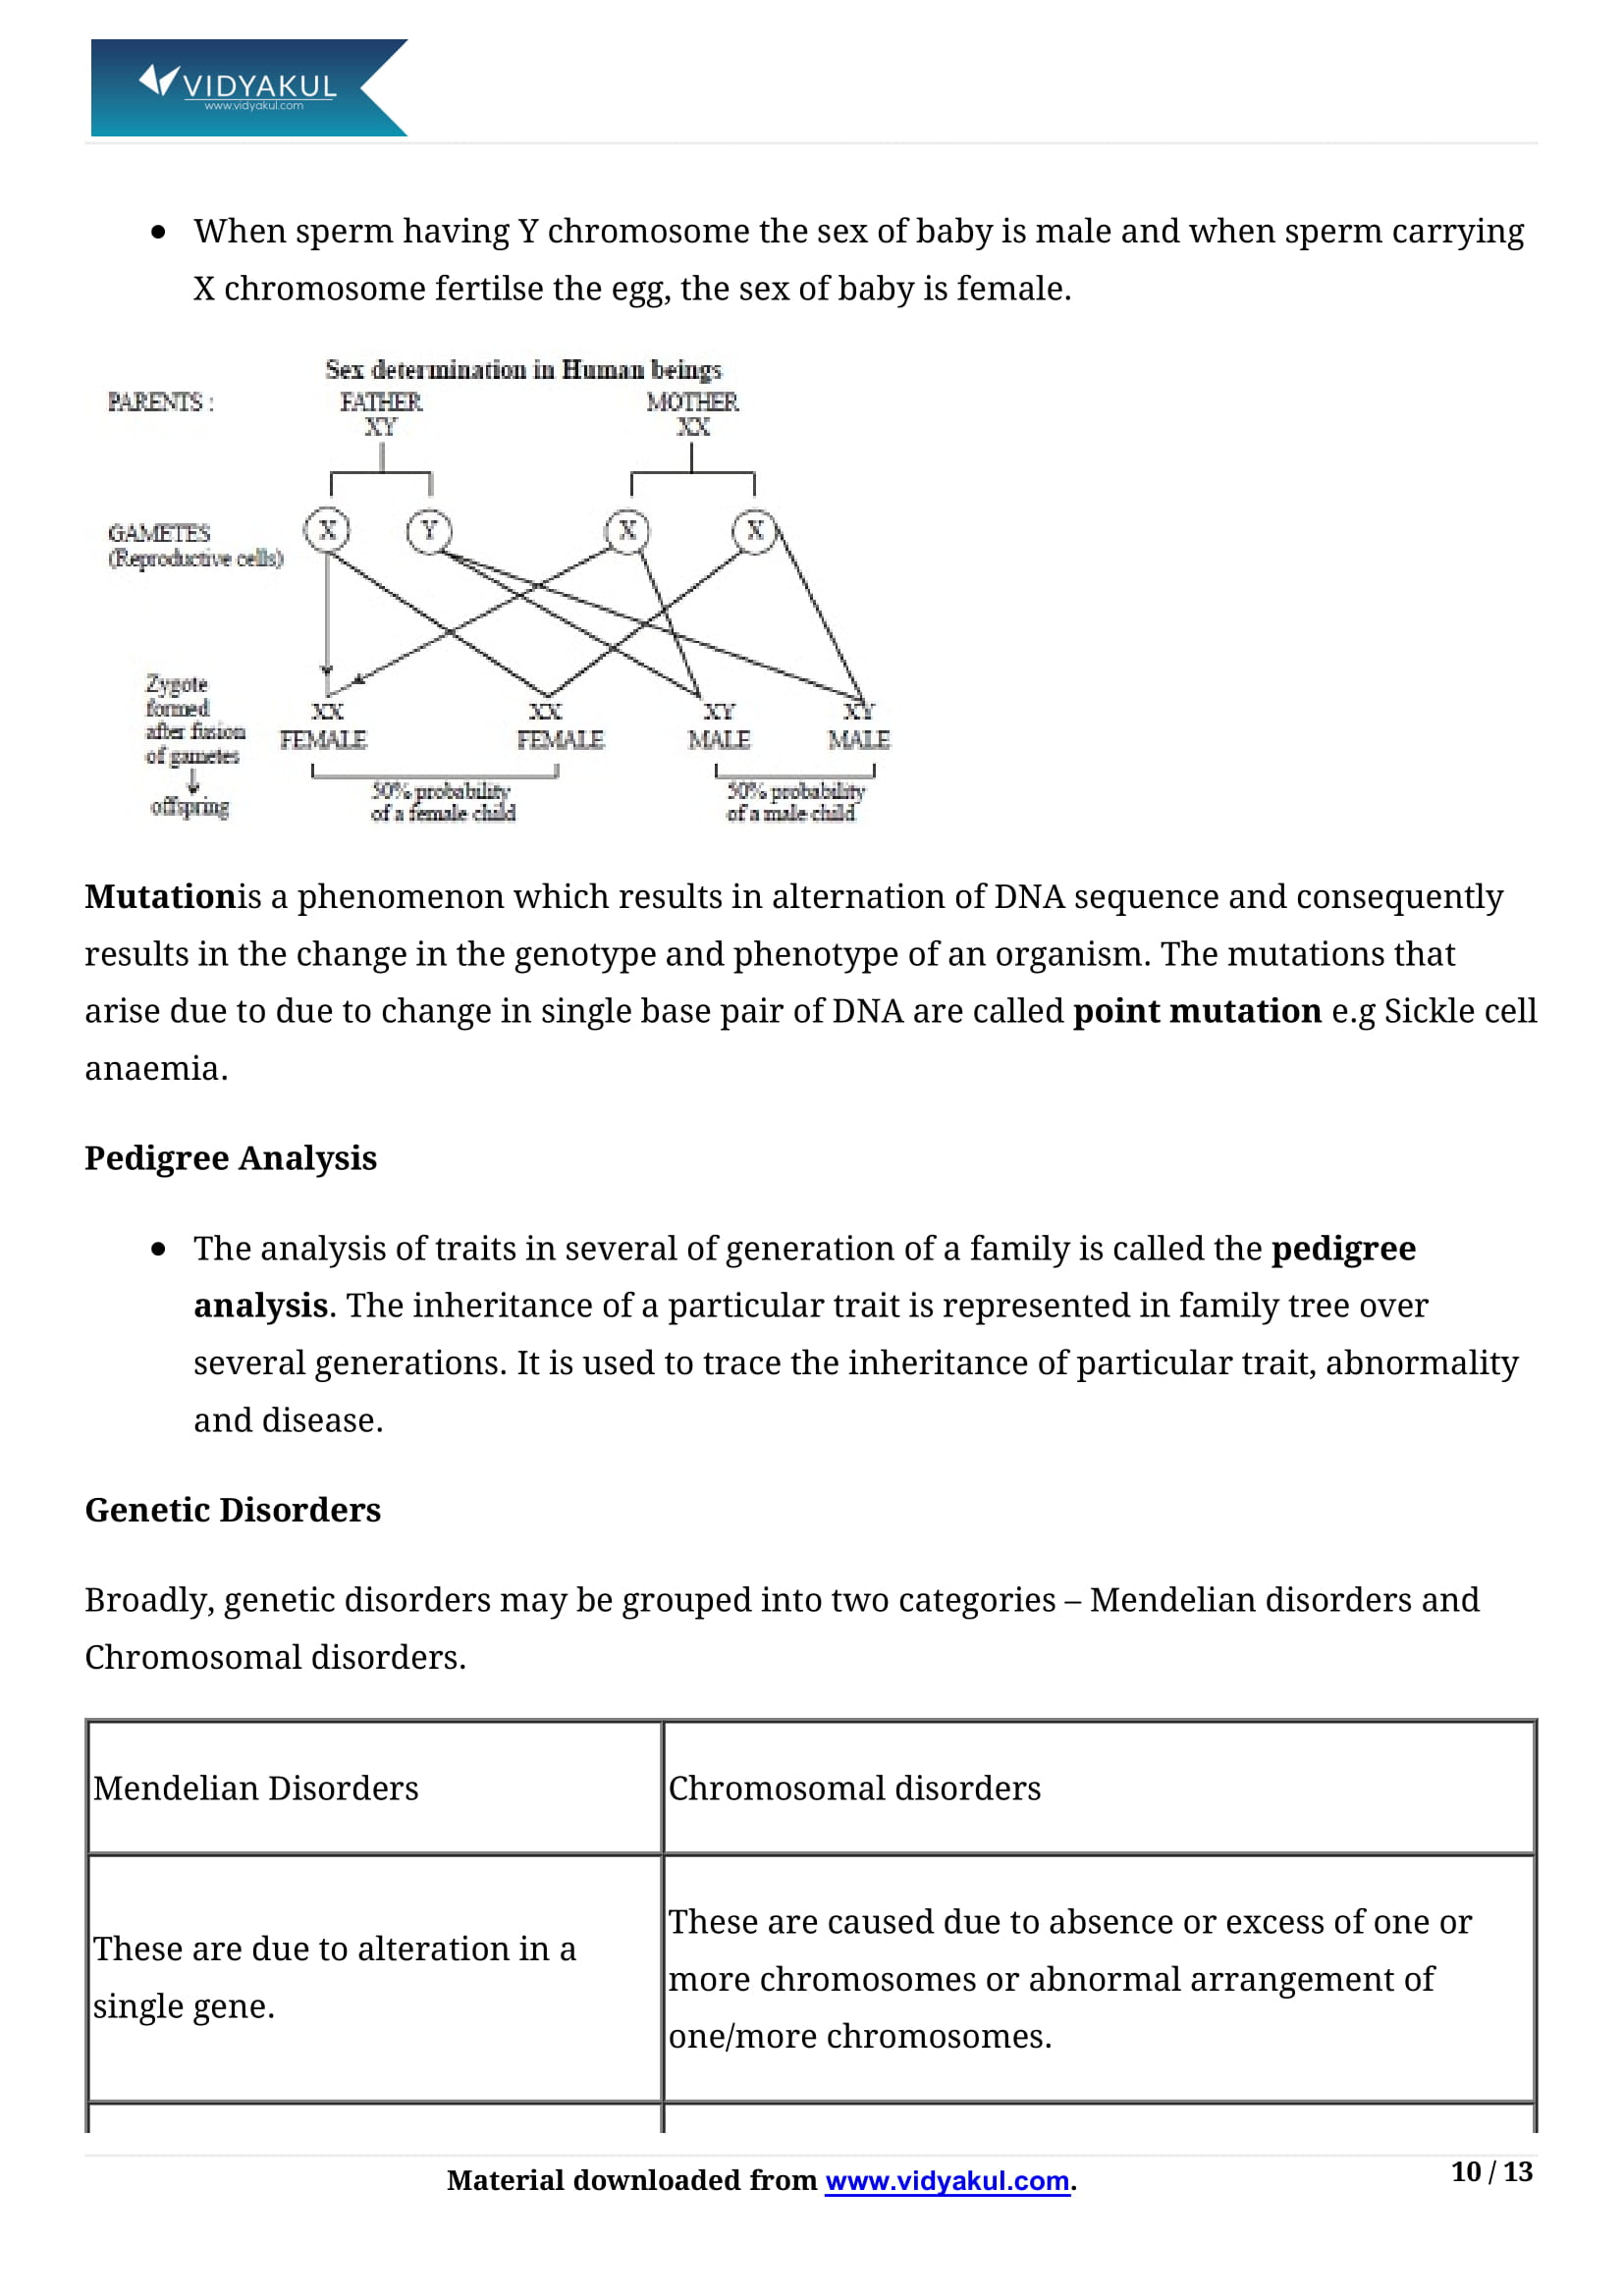 Principles of Inheritance and Variation Class 12 Notes